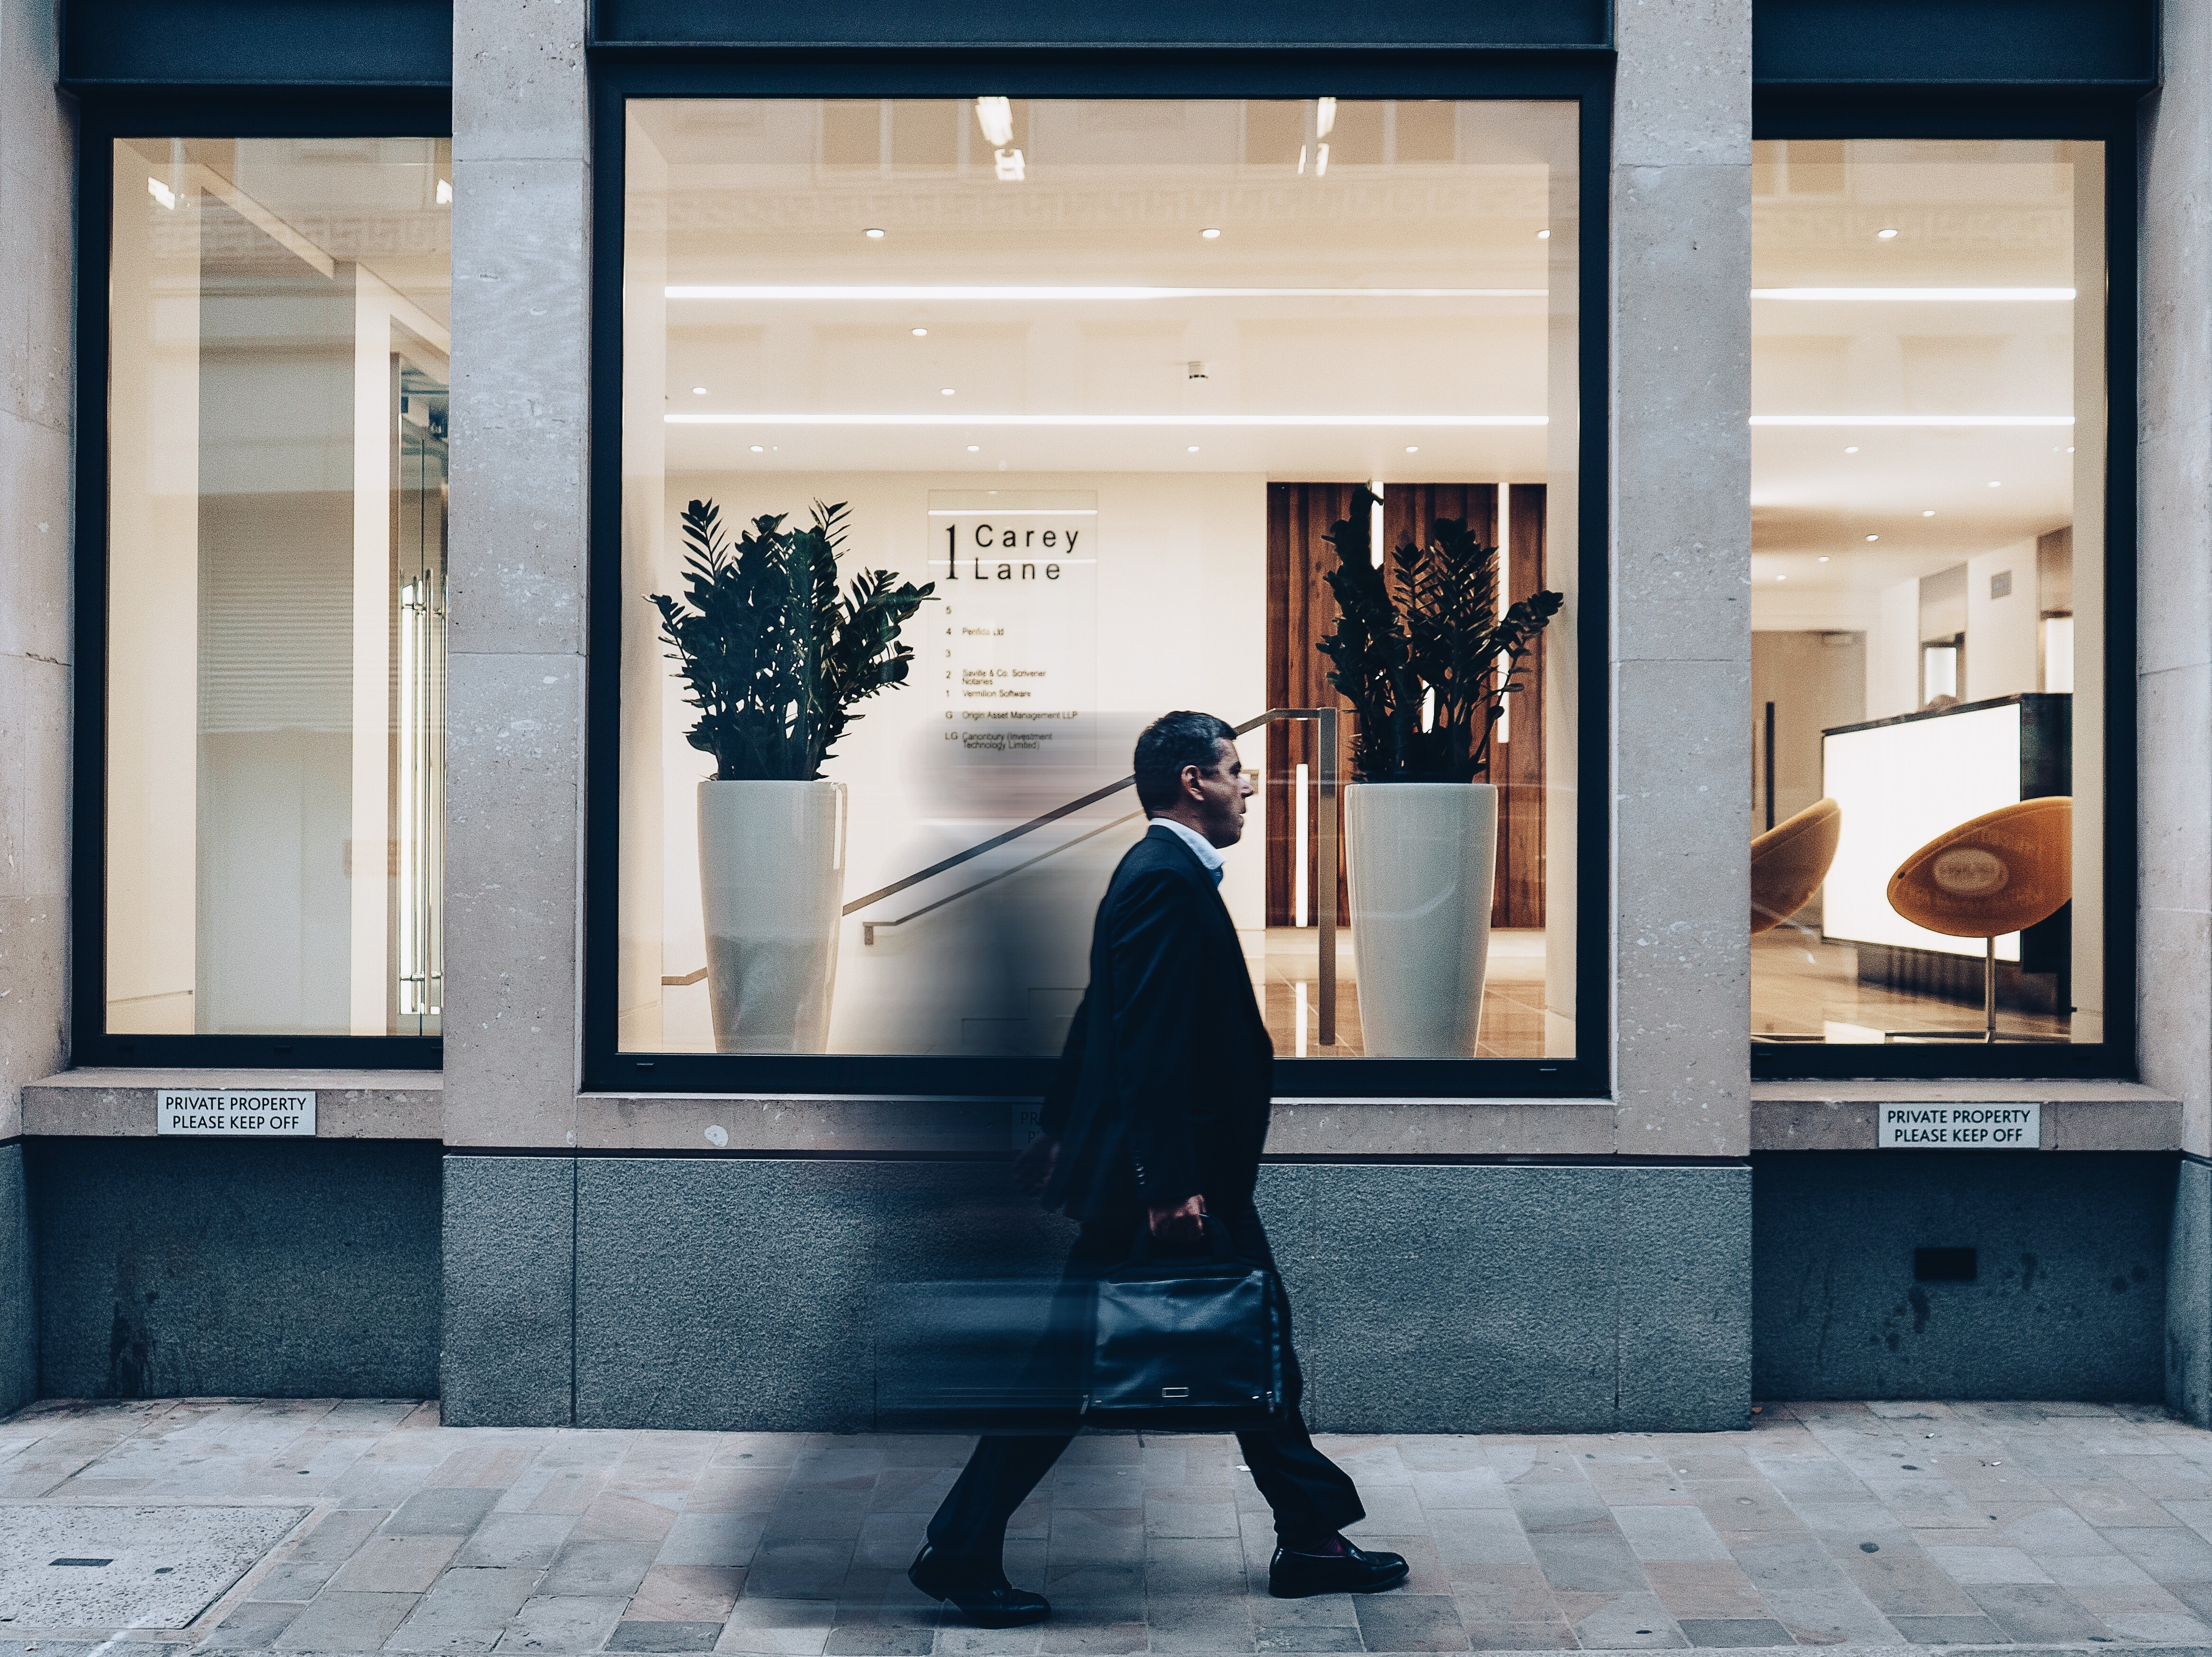 A man in a suit with a suitcase walking past an office building in London